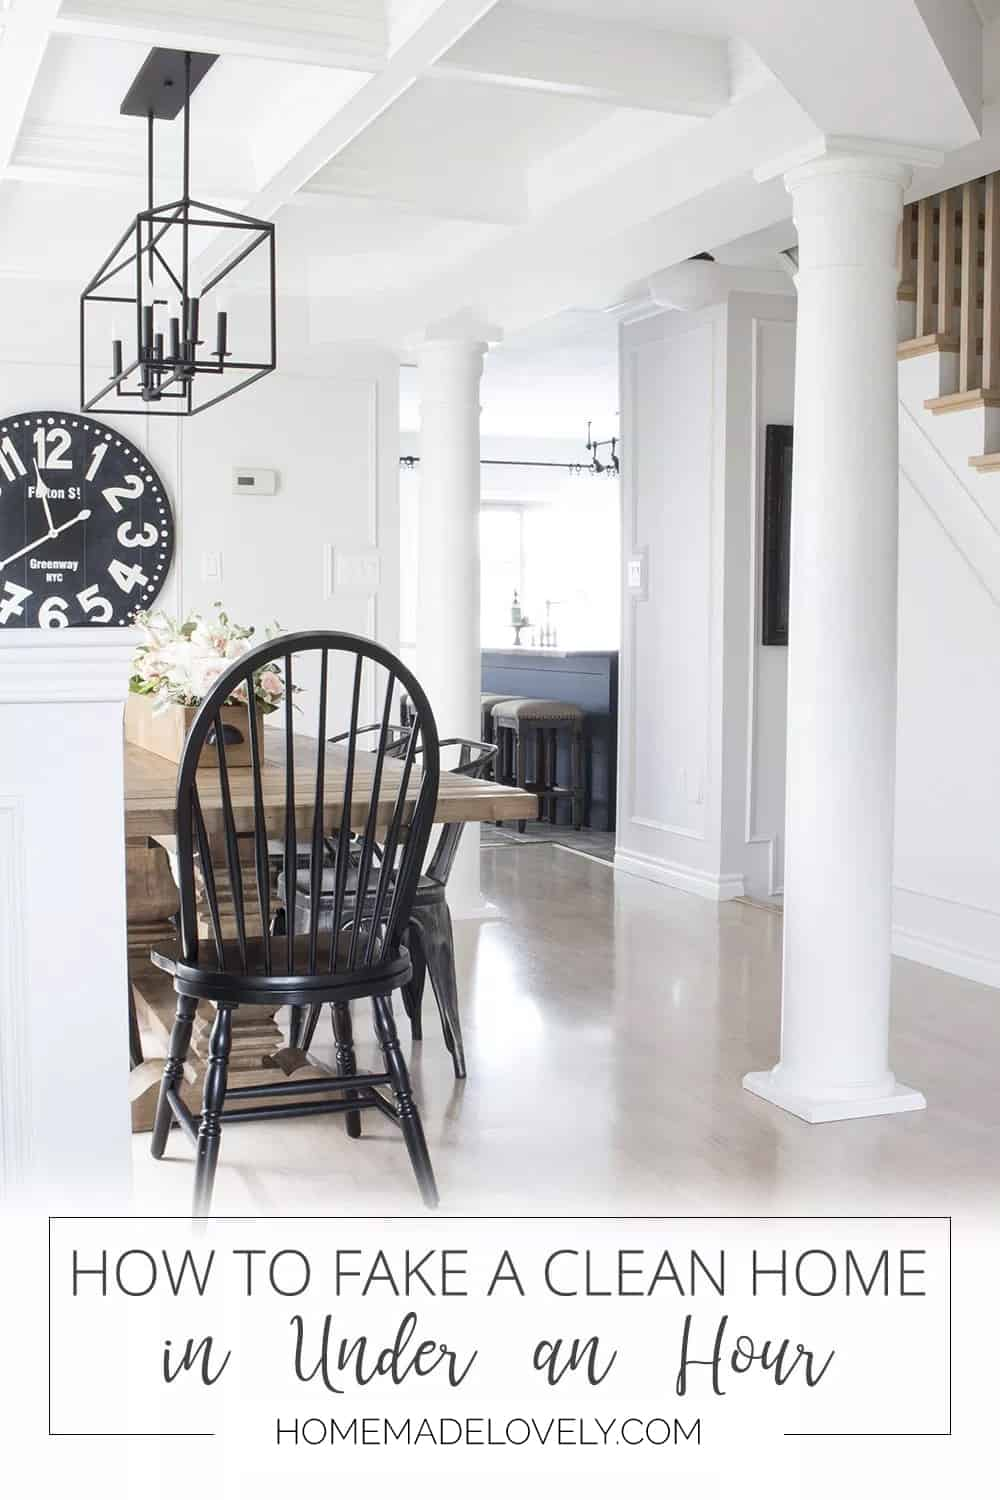 How to fake a clean home in an hour pin